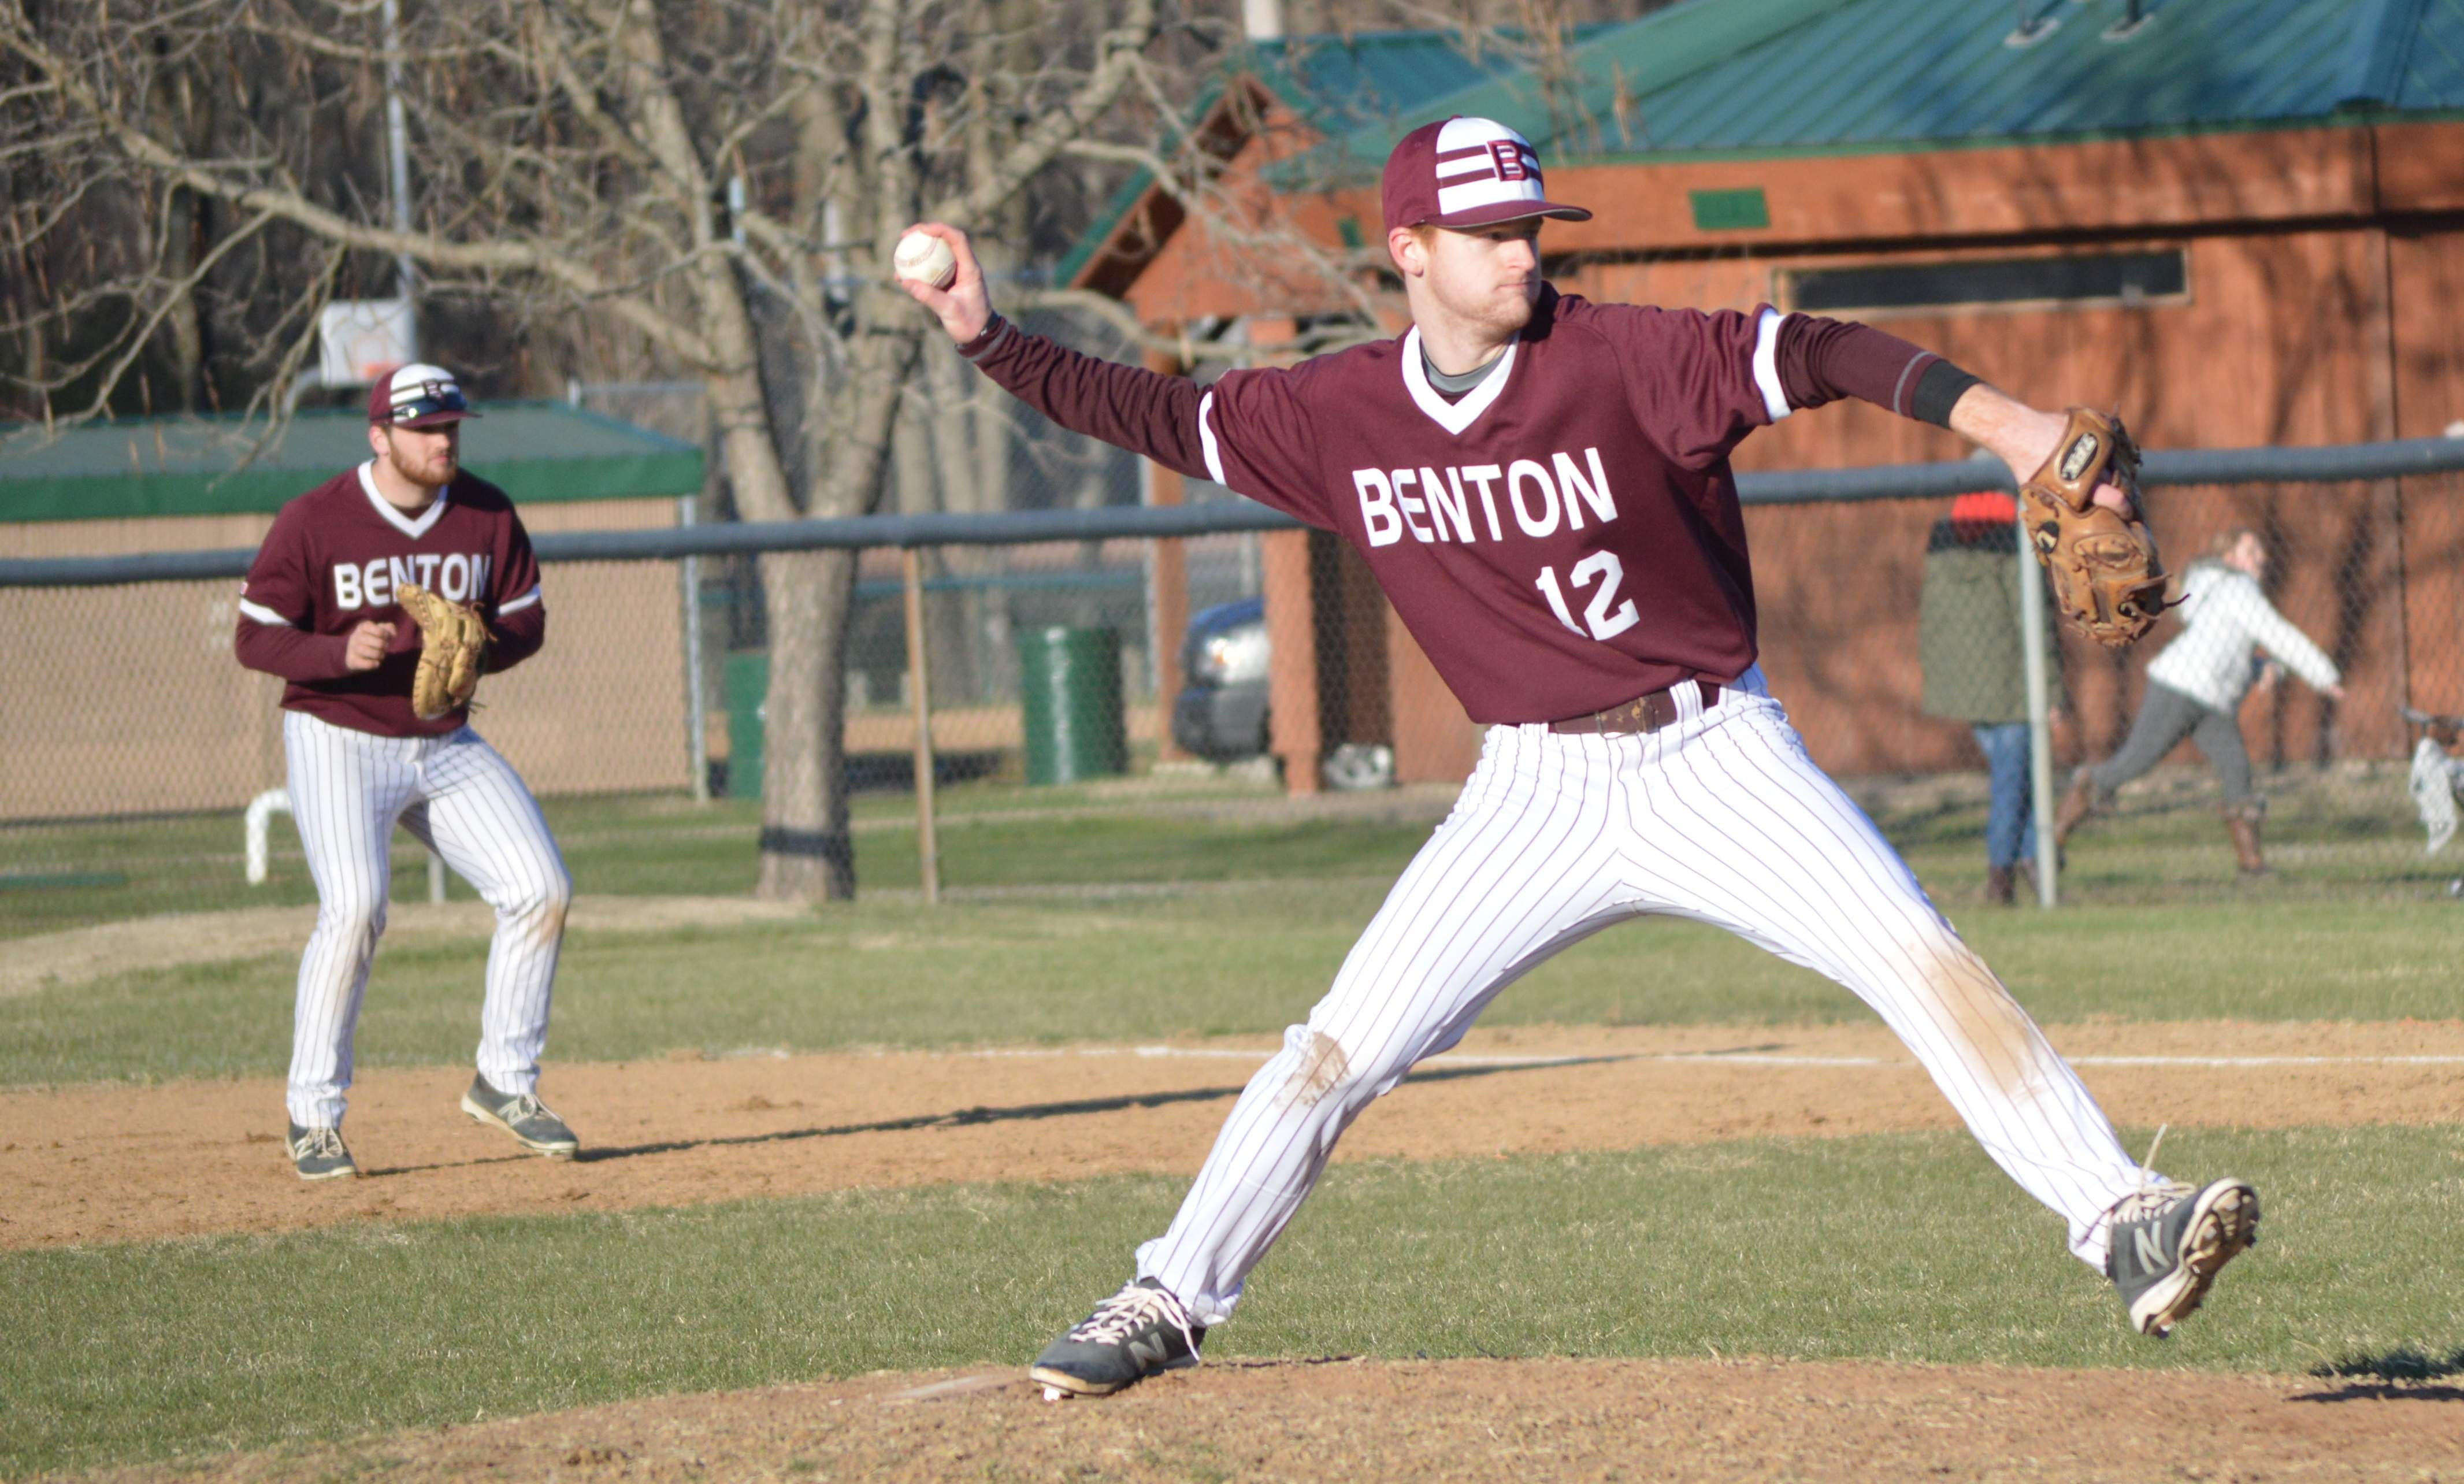 Senior Derek Oxford throws a pitch during the fifth inning of the Rangers' Wednesday afternoon game against Centralia.